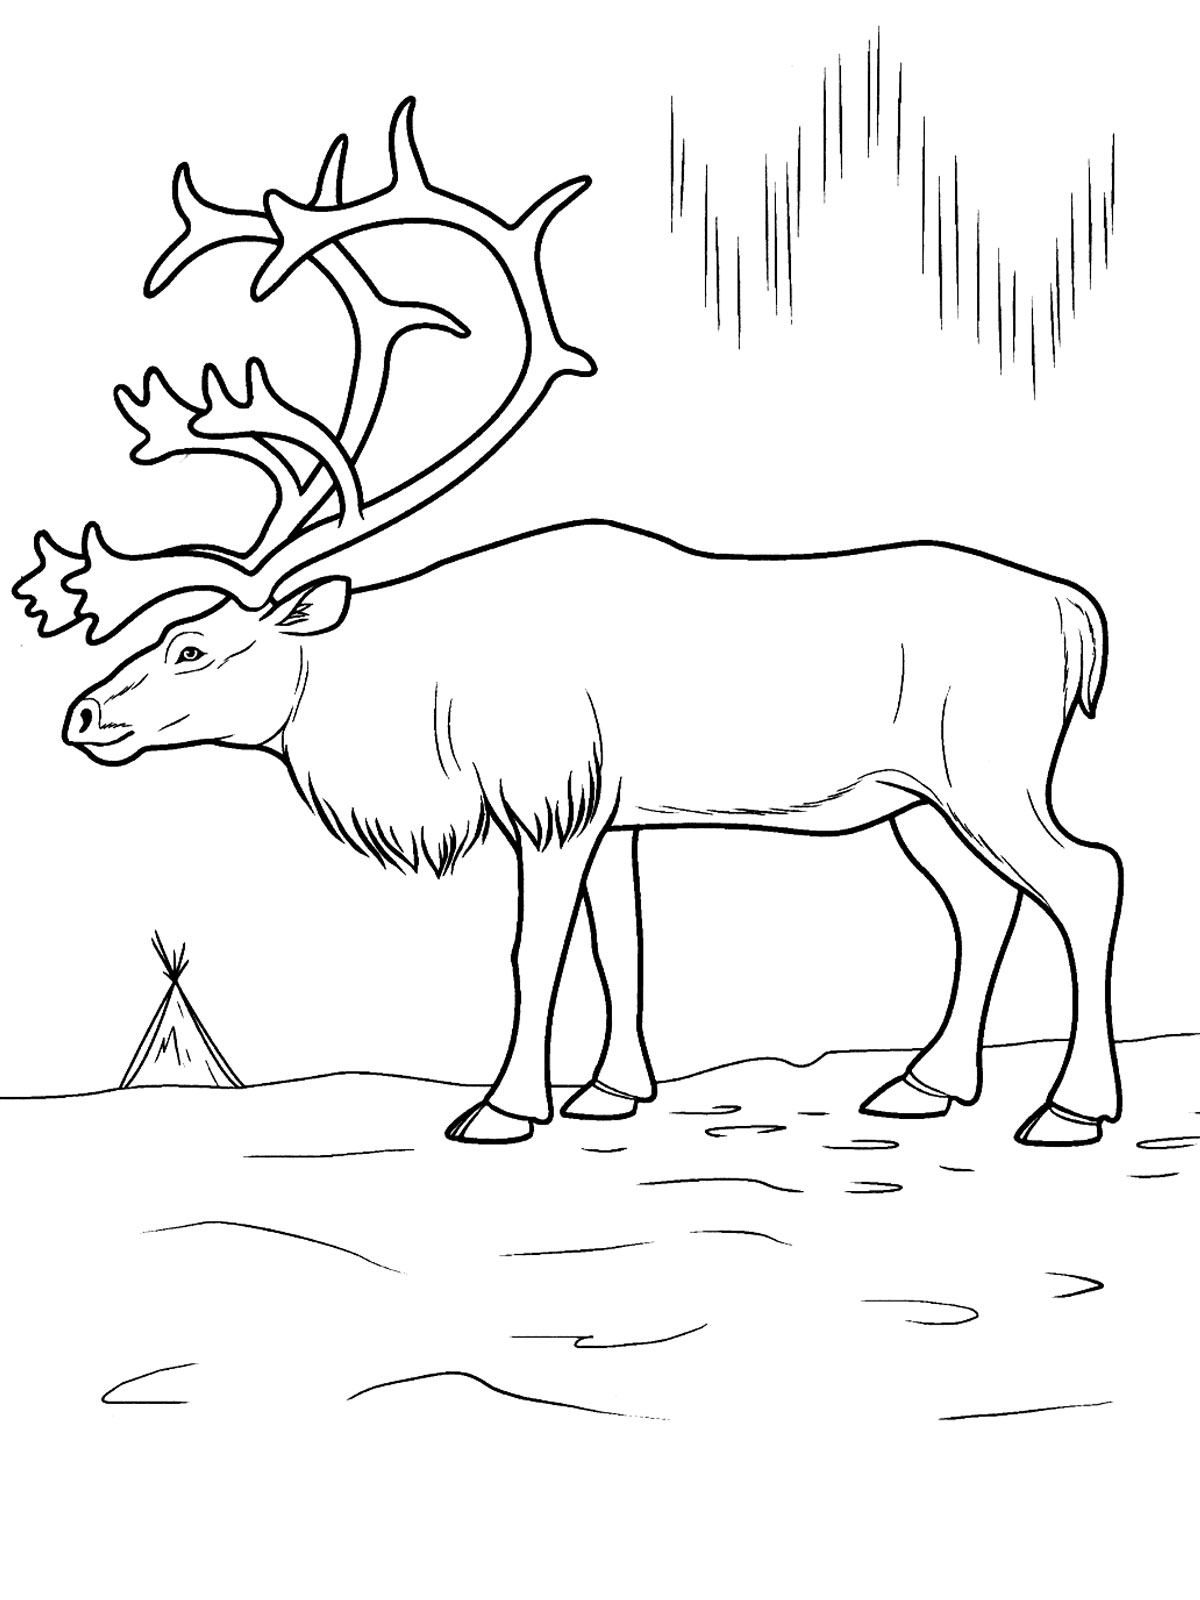 tundra animals coloring pages - photo#5